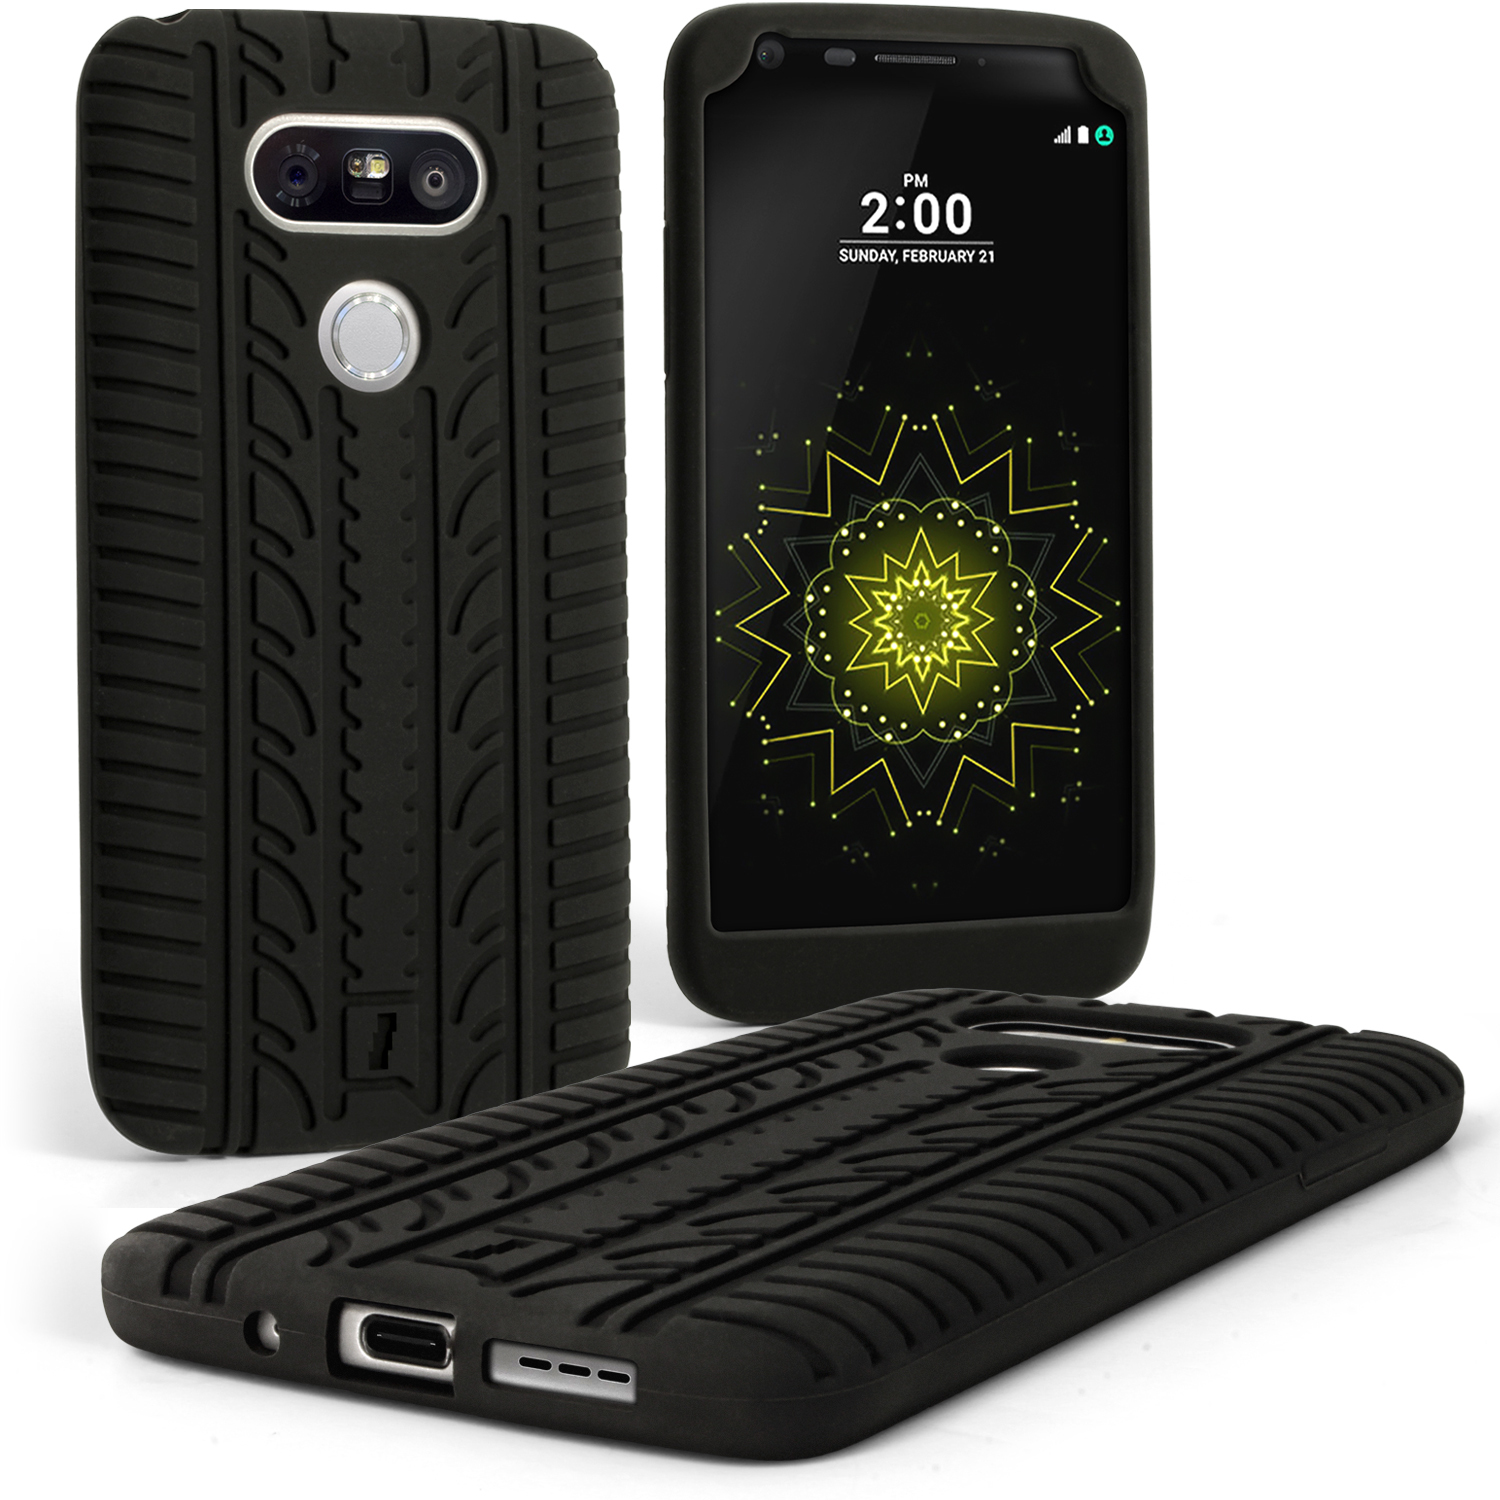 iGadgitz Black Tyre Silicone Gel Skin Case for LG G5 H850 H840 Rubber Cover + Screen Protector